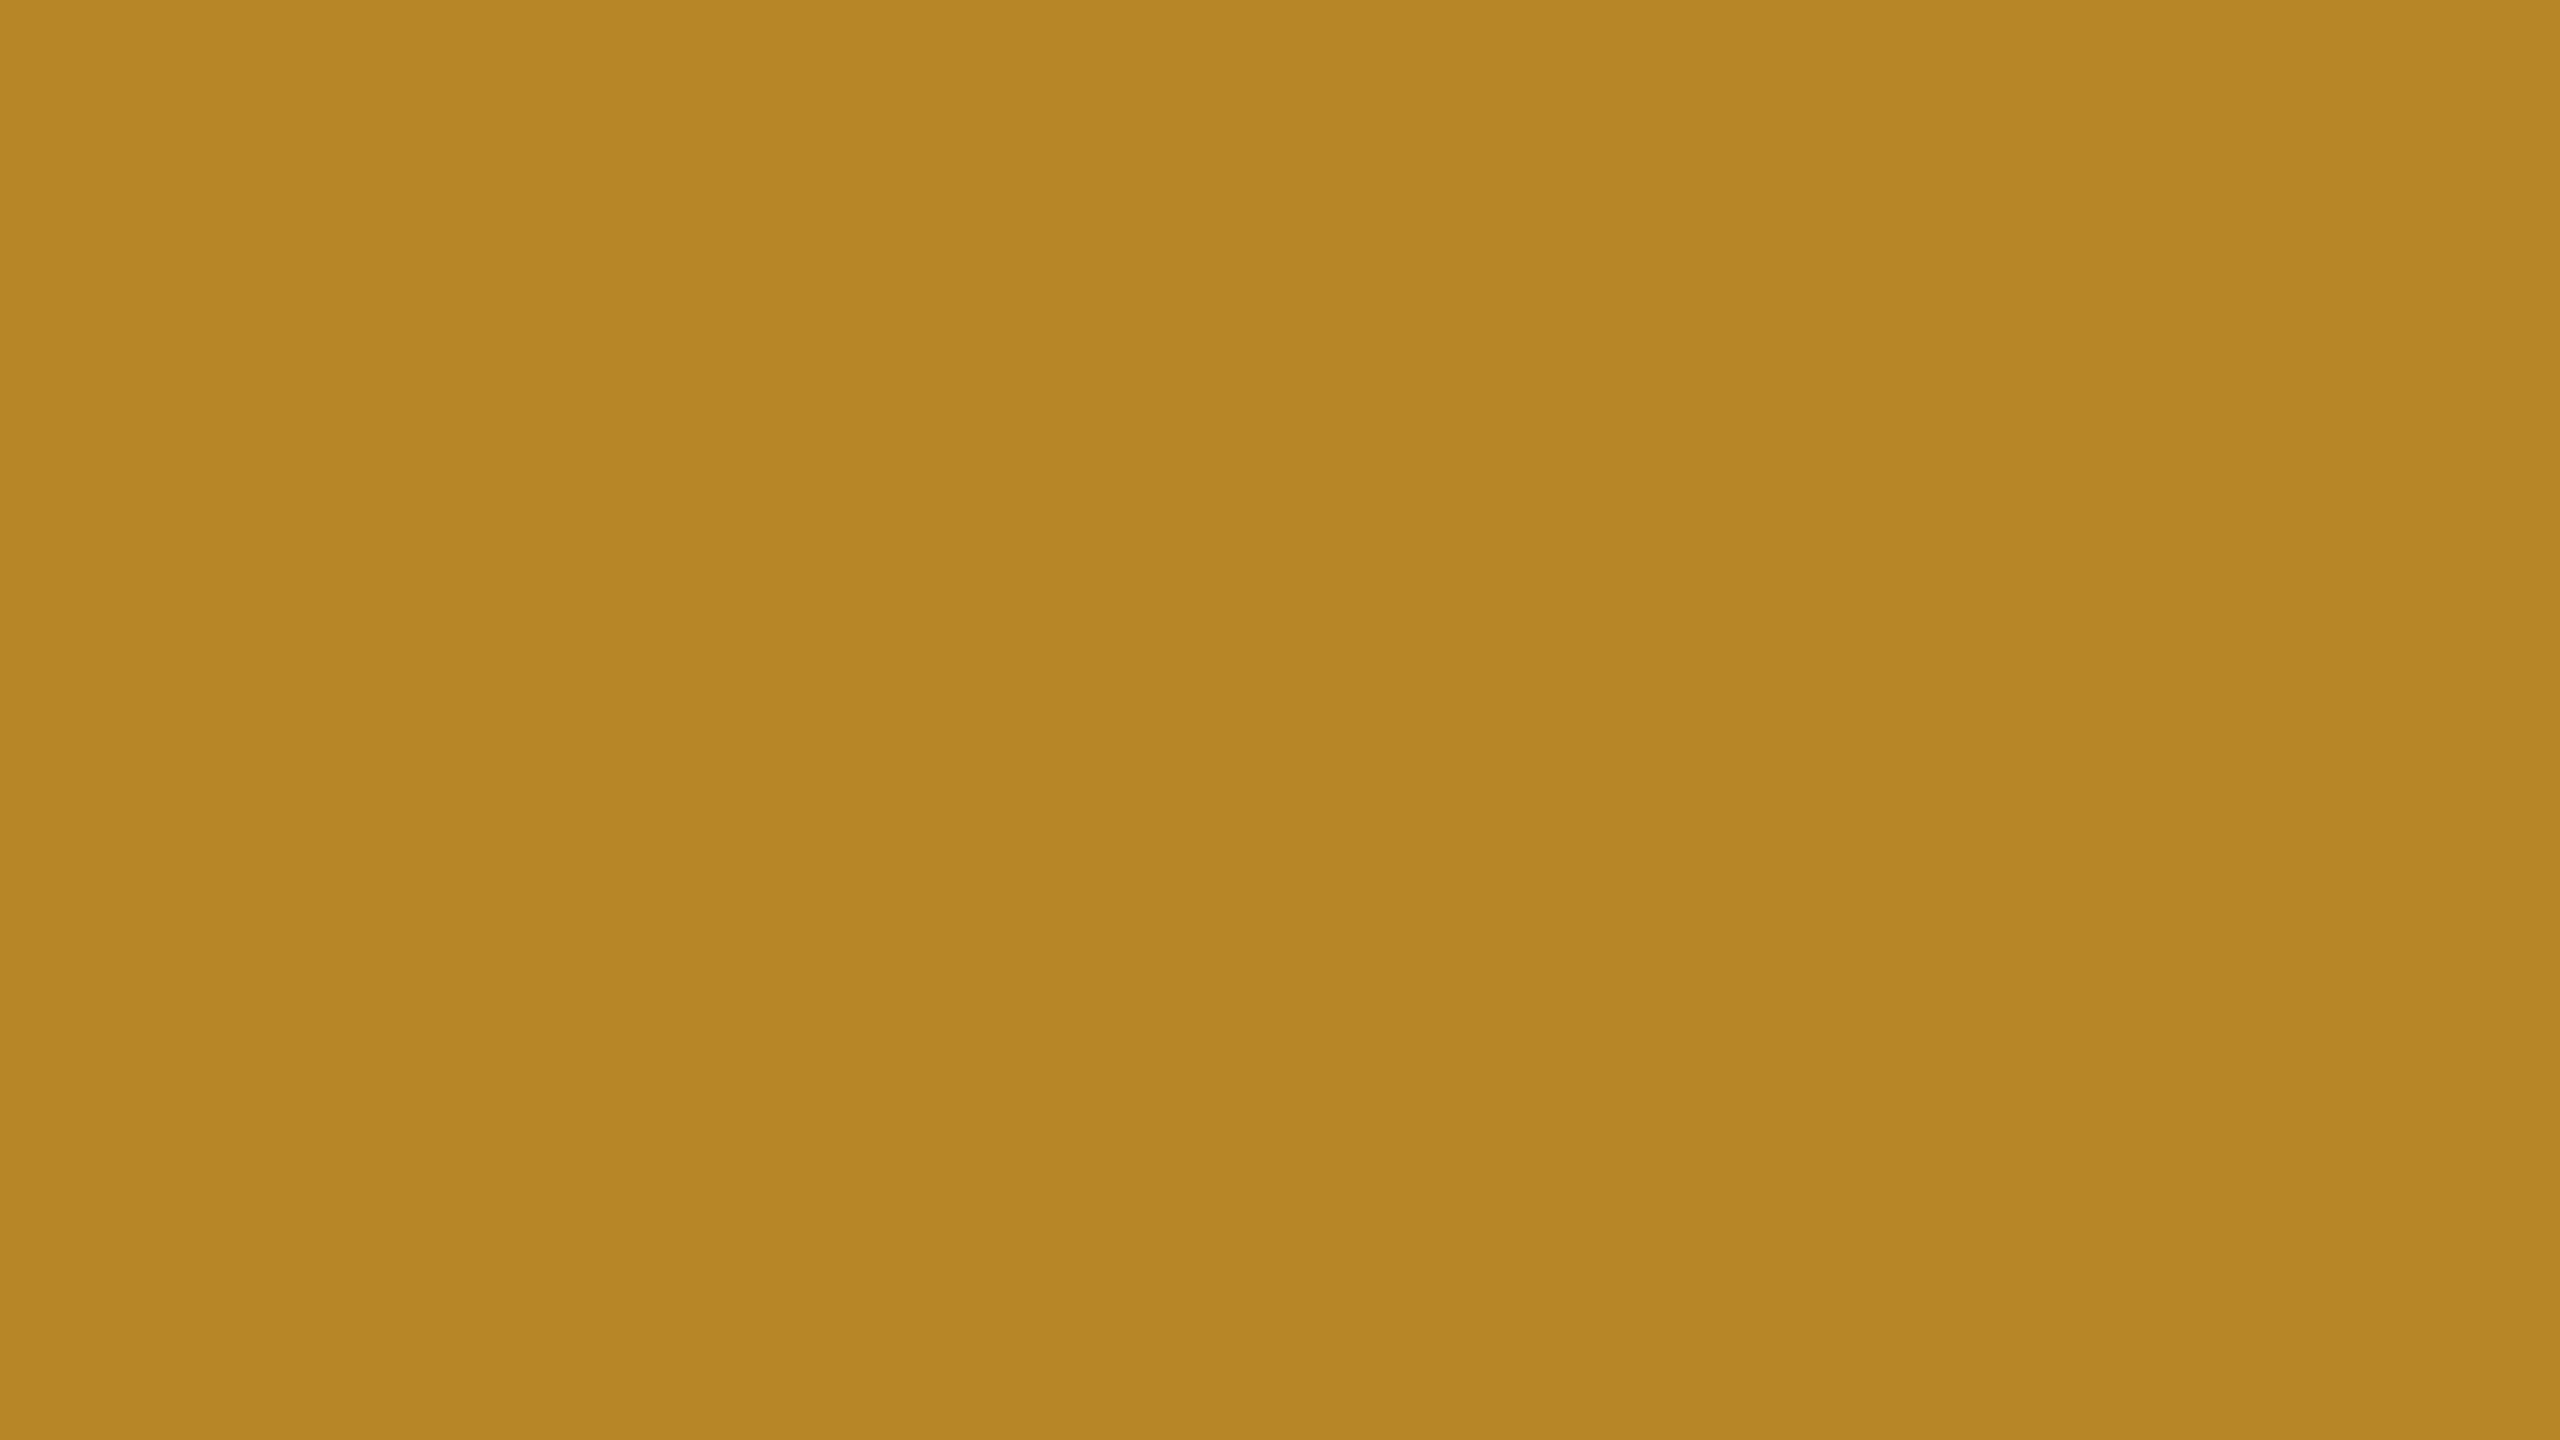 2560x1440 University Of California Gold Solid Color Background